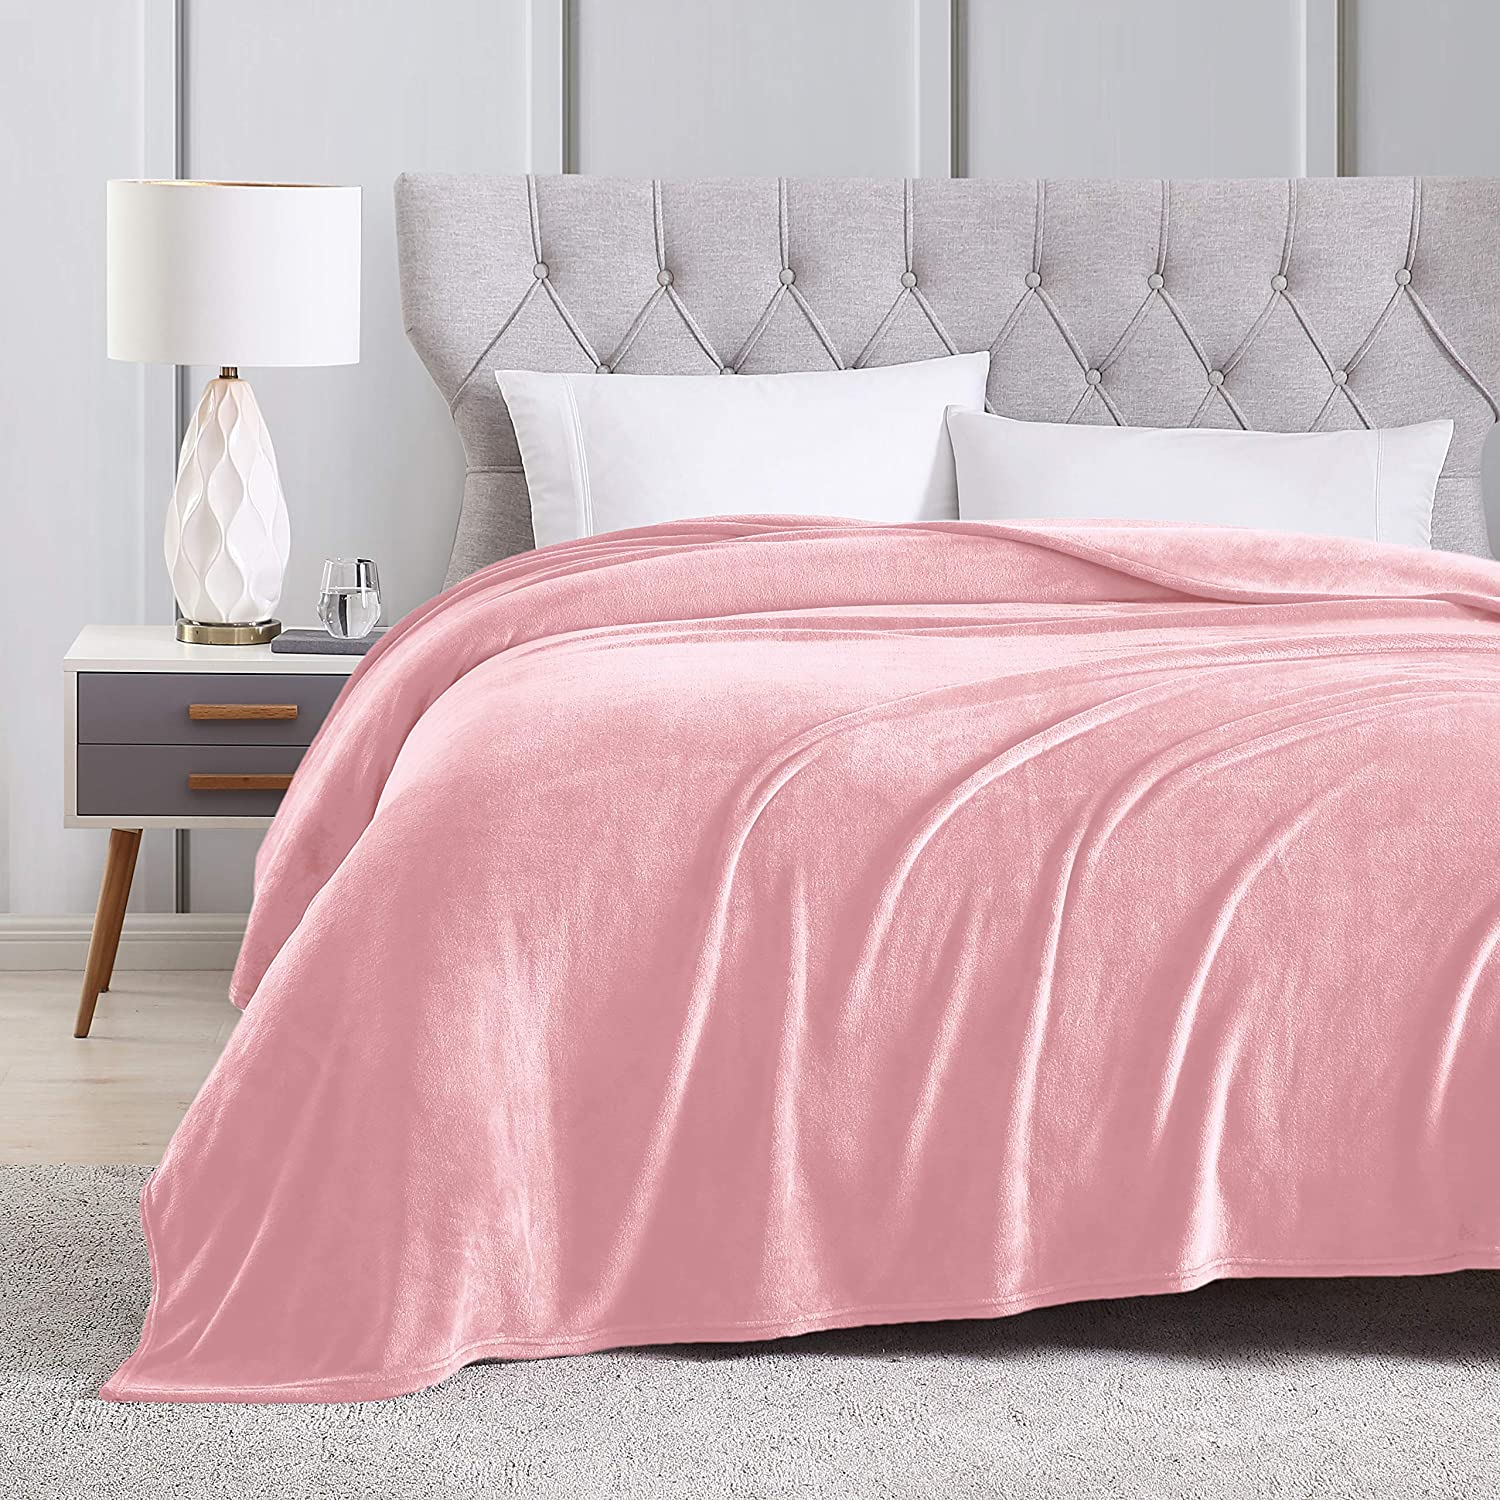 EXQ Home Fleece Blanket Queen Size Pink Throw Blanket for Bed or Couch - Microfiber Fuzzy Flannel Blanket for Adults or Kids